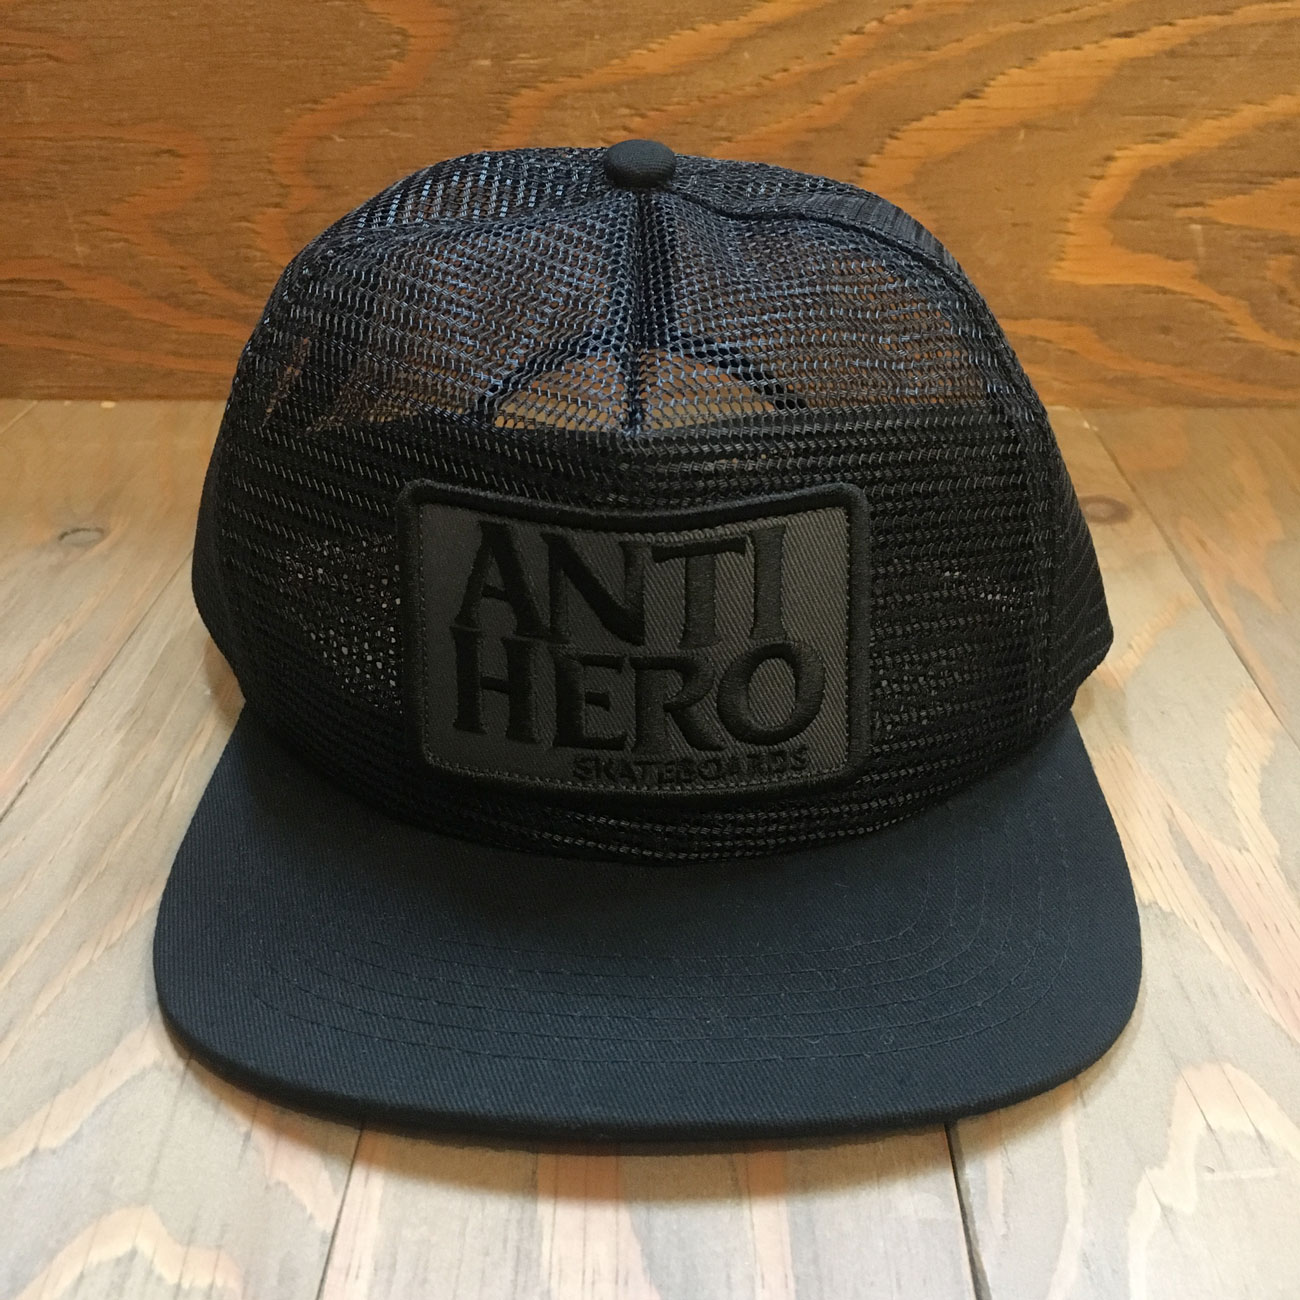 ANTI HERO RESERVE PATCH MESH/MESH CAP